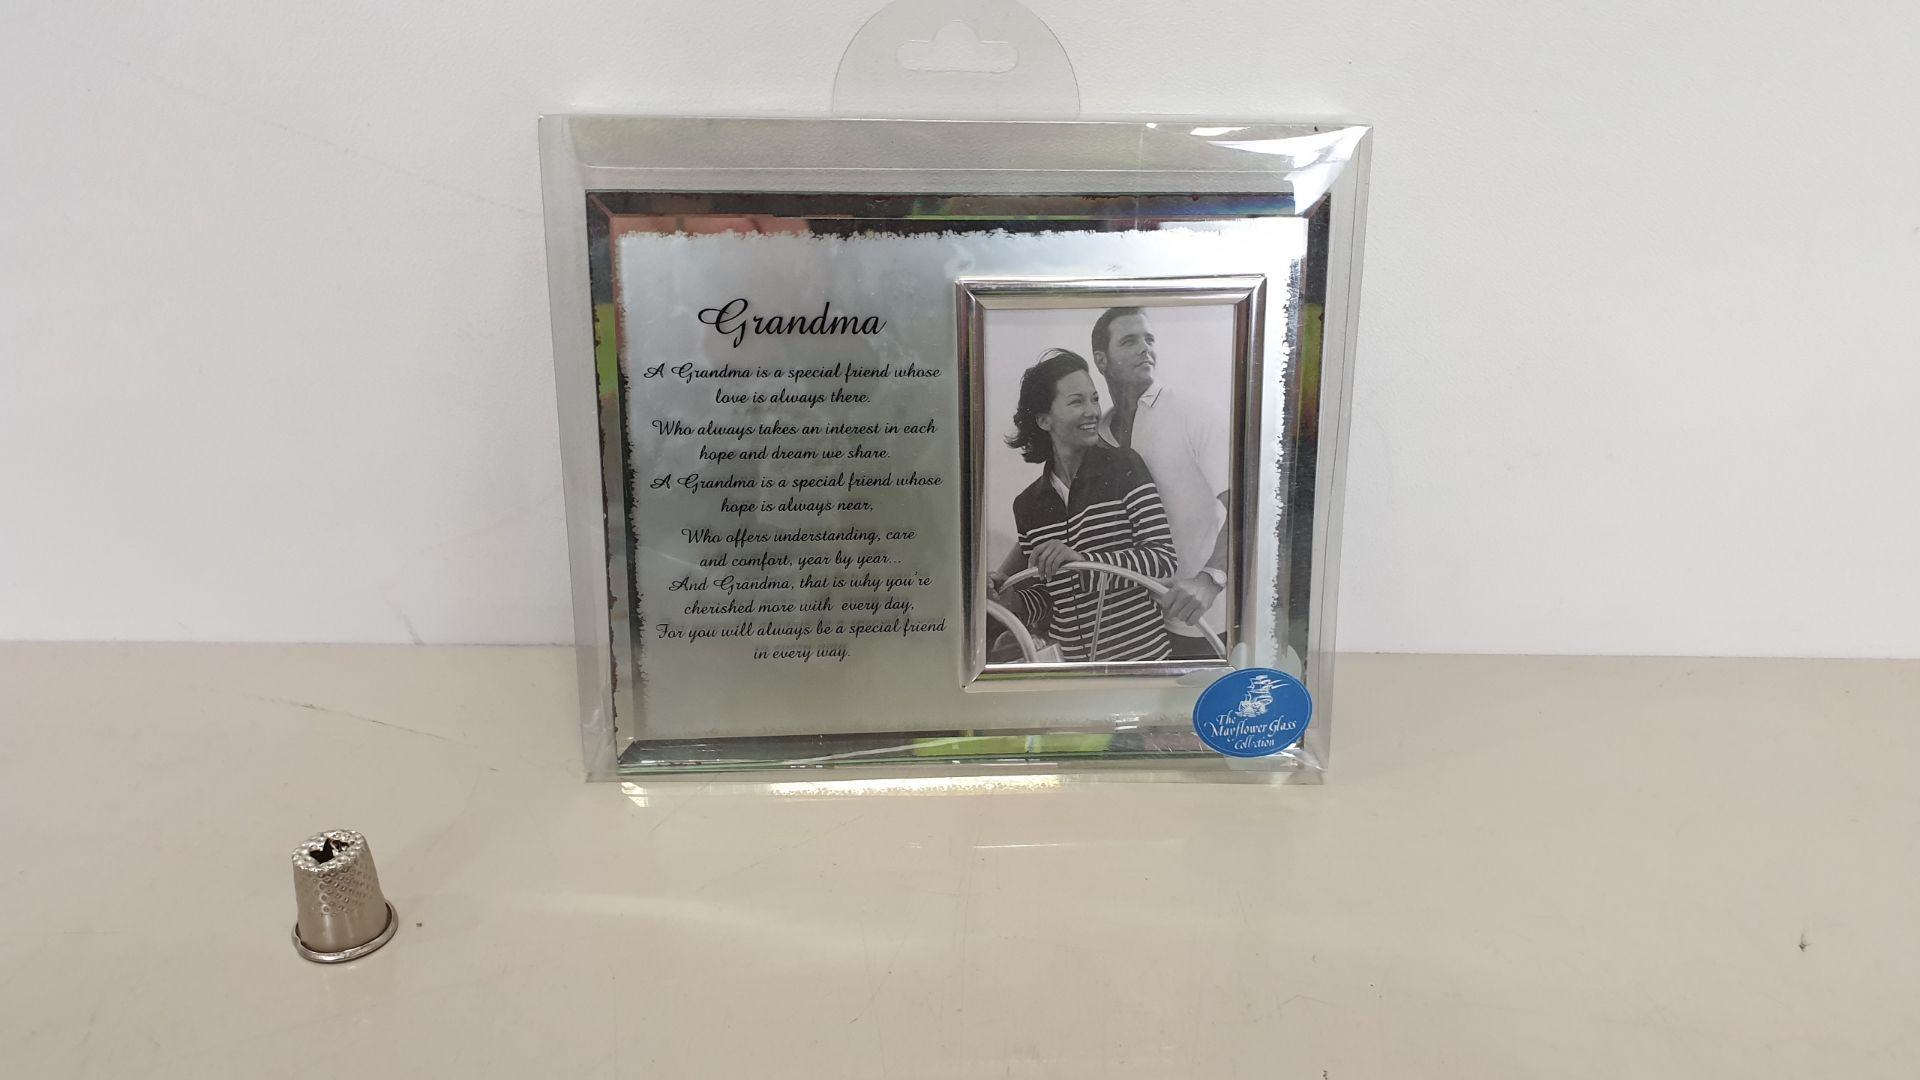 Lot 616 - 112 X BRAND NEW 'THE MAYFLOWER GLASS COLLECTION' GRANDMA MESSAGE FRAME - IN 2 BOXES AND 16 LOOSE